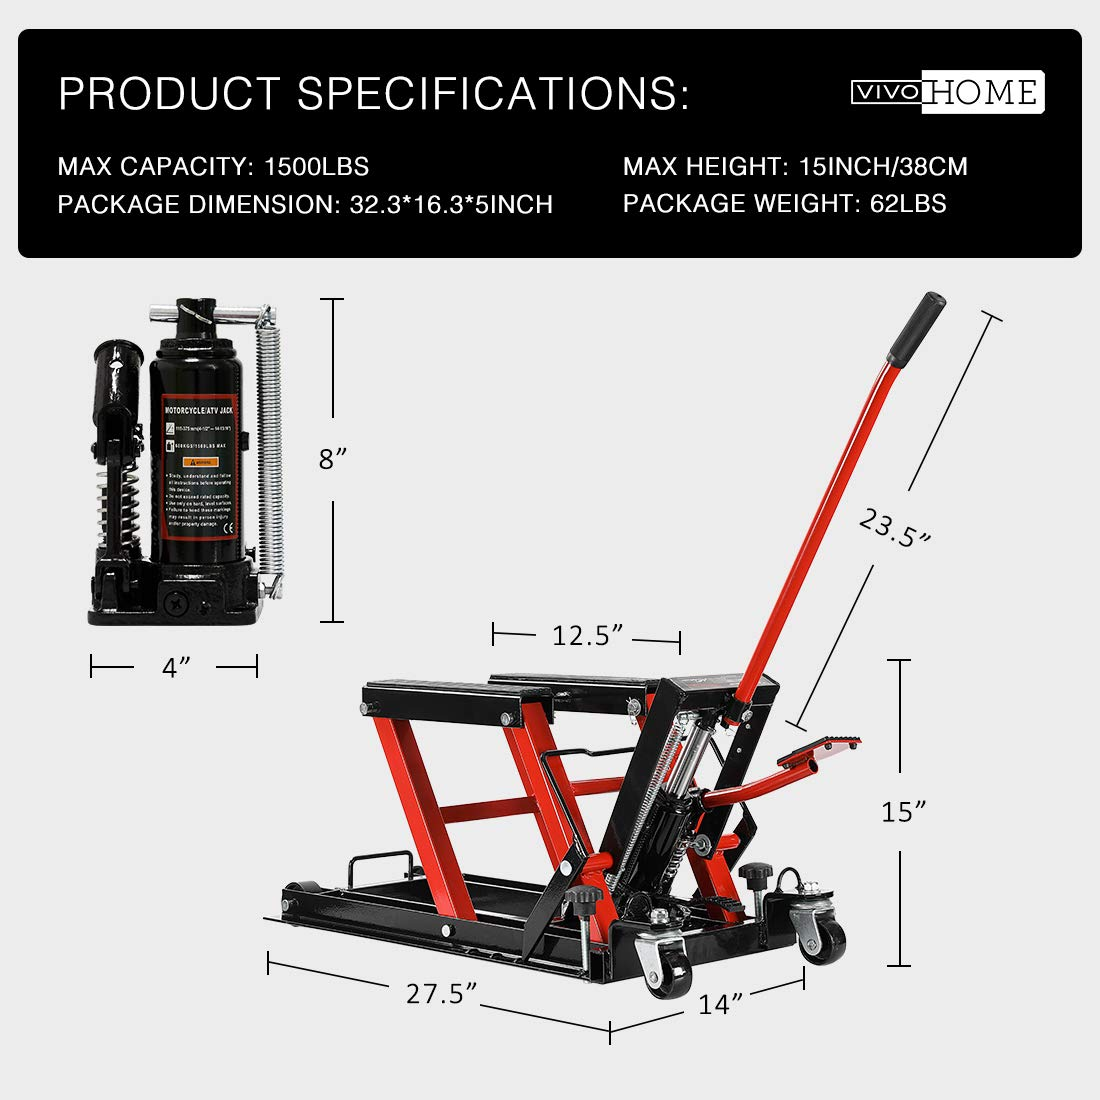 VIVOHOME Steel Hydraulic Motorcycle ATV Lift Jack Hoist Stand 1500Lb by VIVOHOME (Image #5)